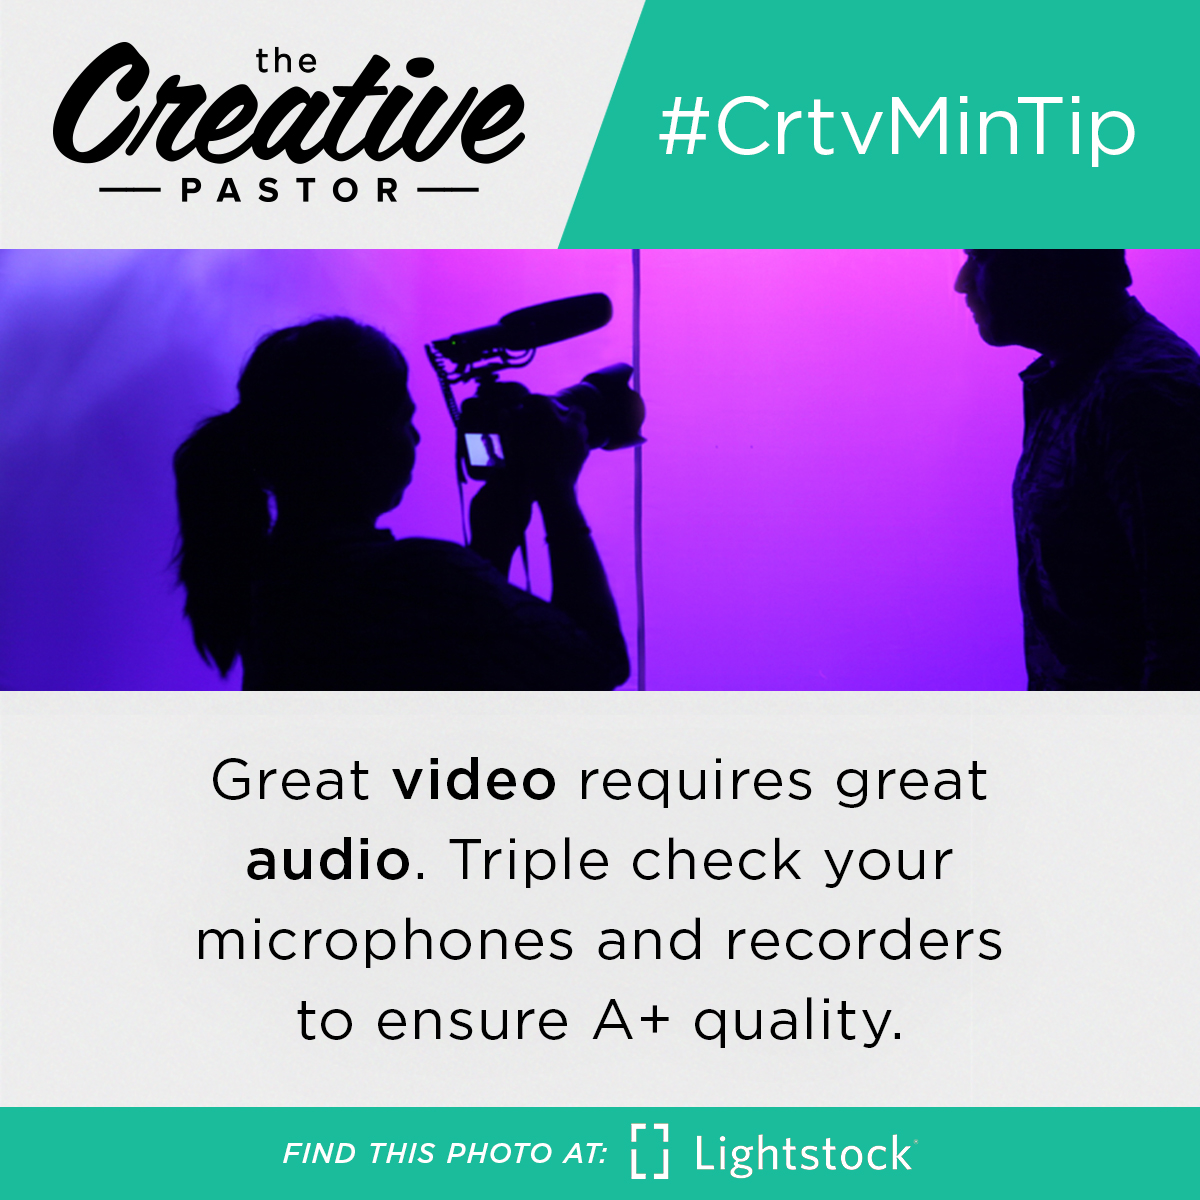 Great video requires great audio. Triple check your microphones and recorders to ensure A+ quality.